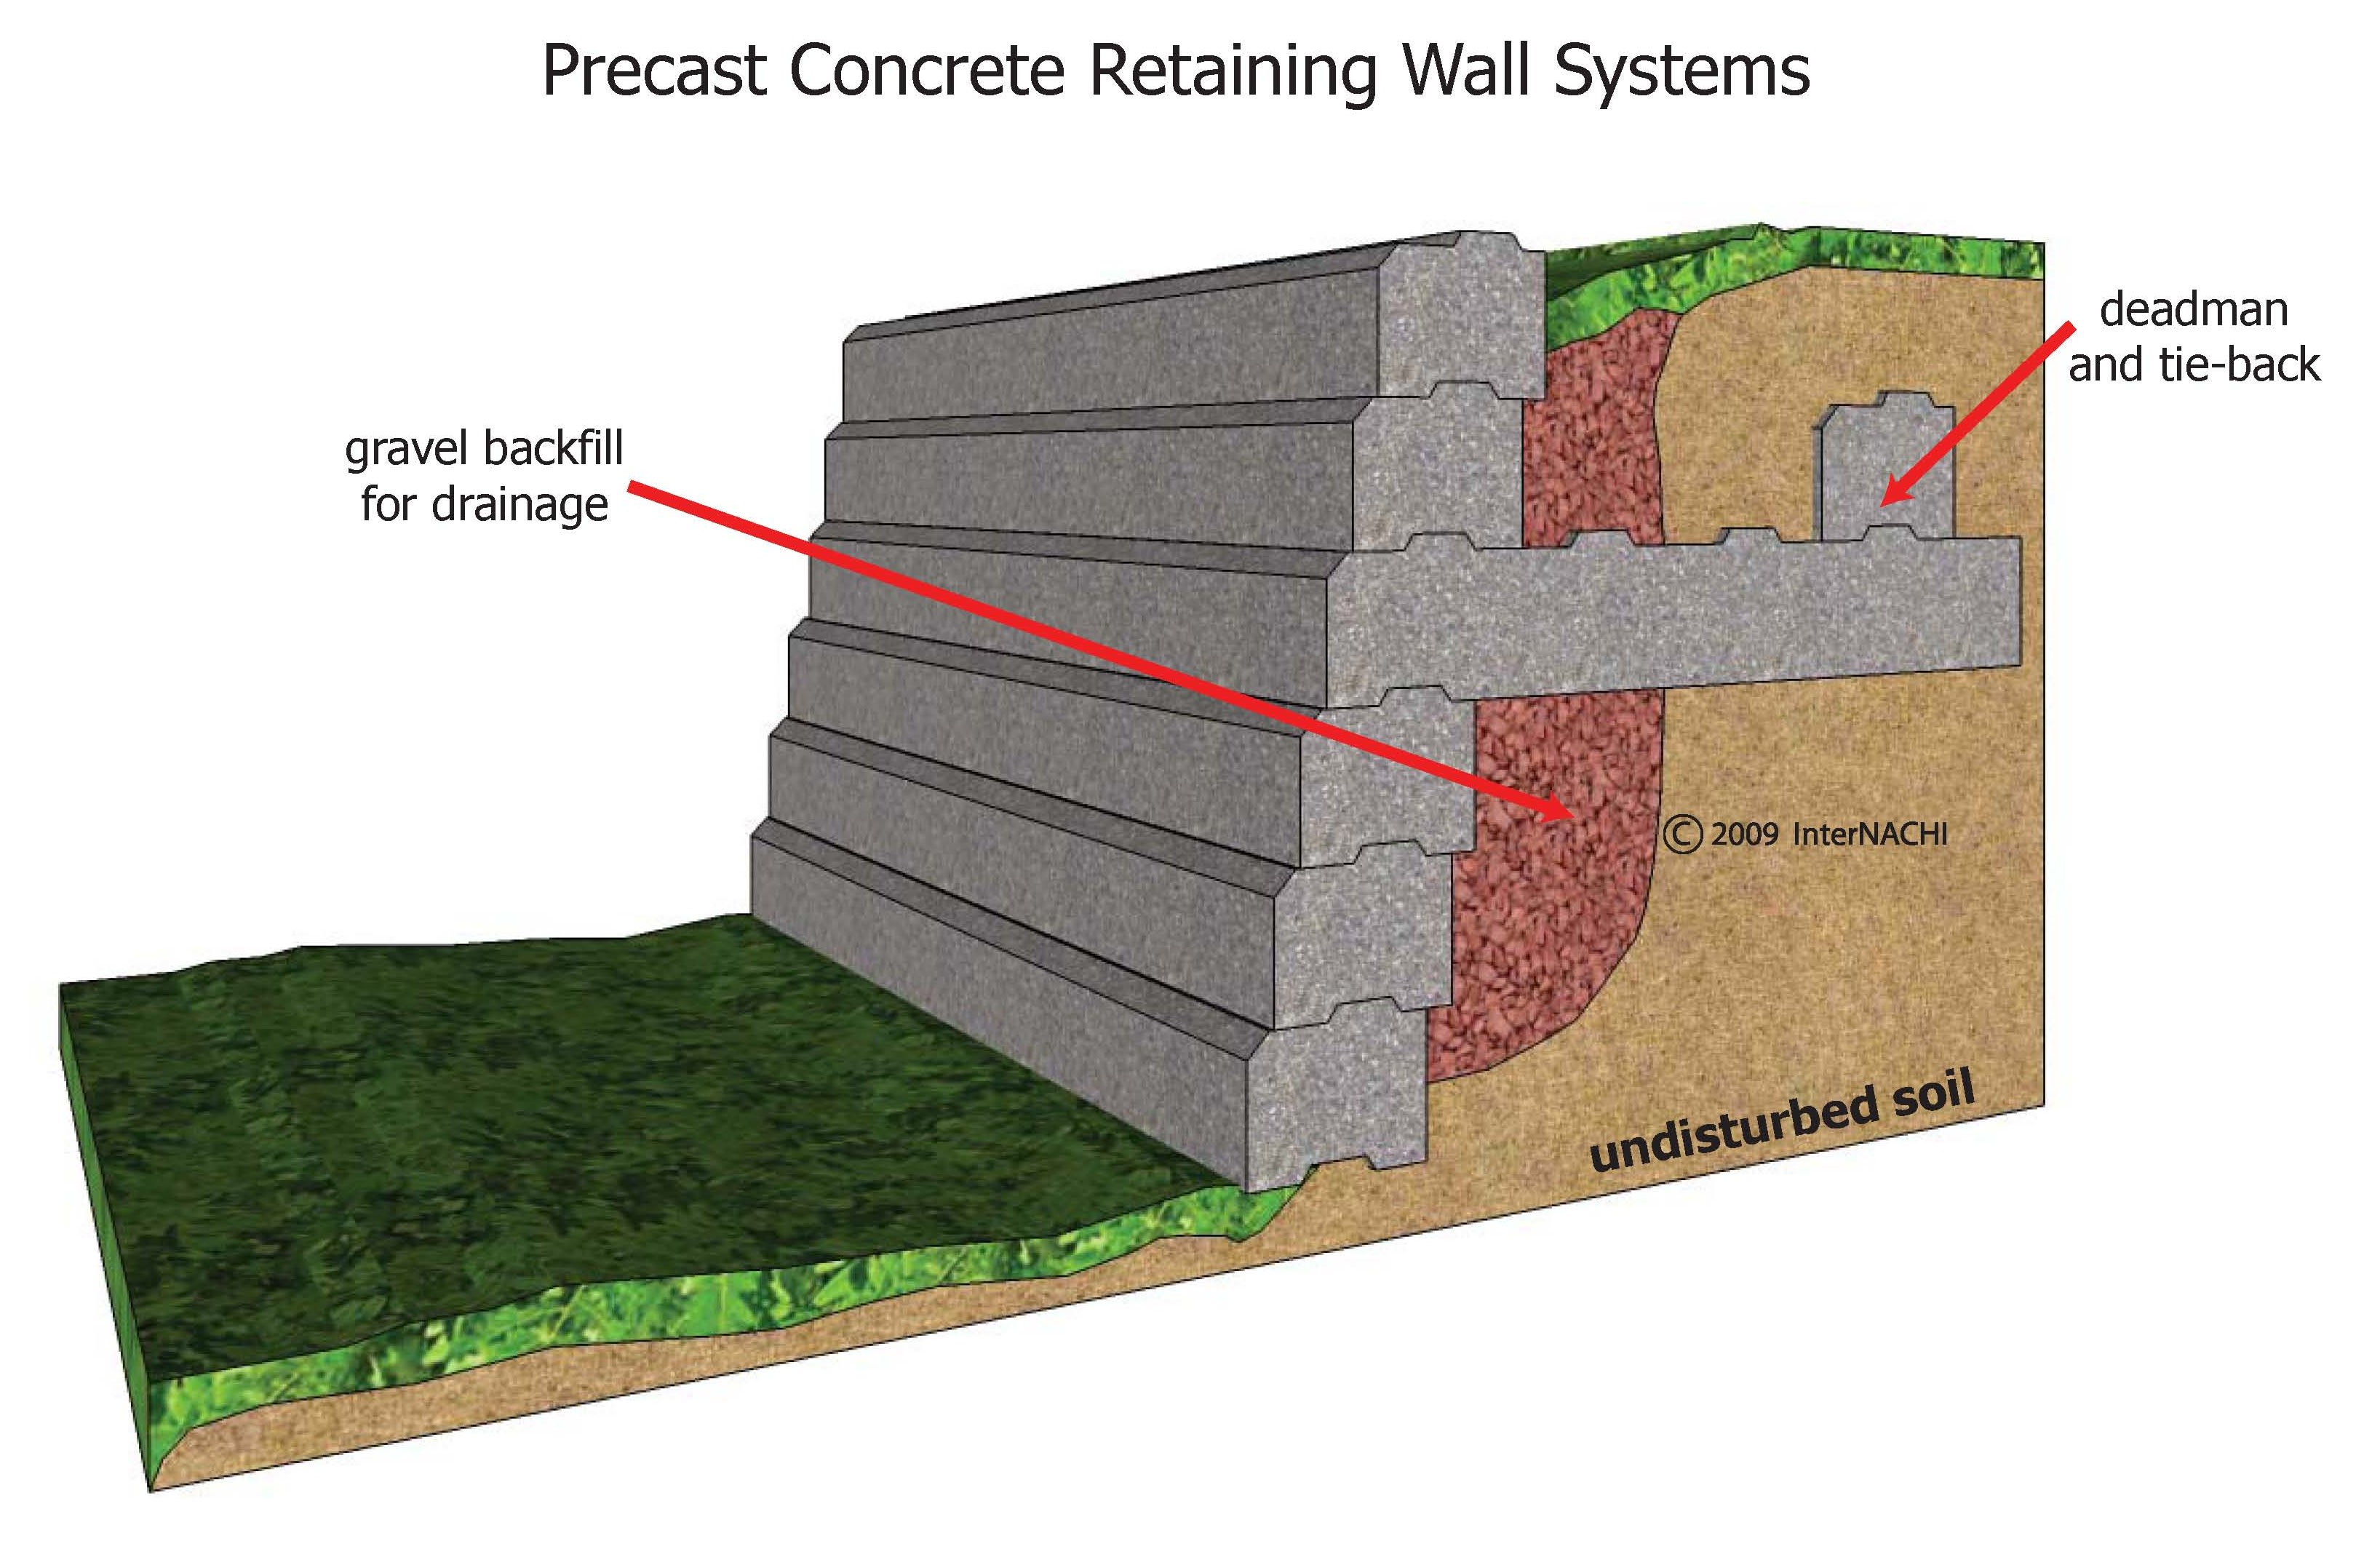 Pre-cast concrete retaining wall with deadman and tie-back.